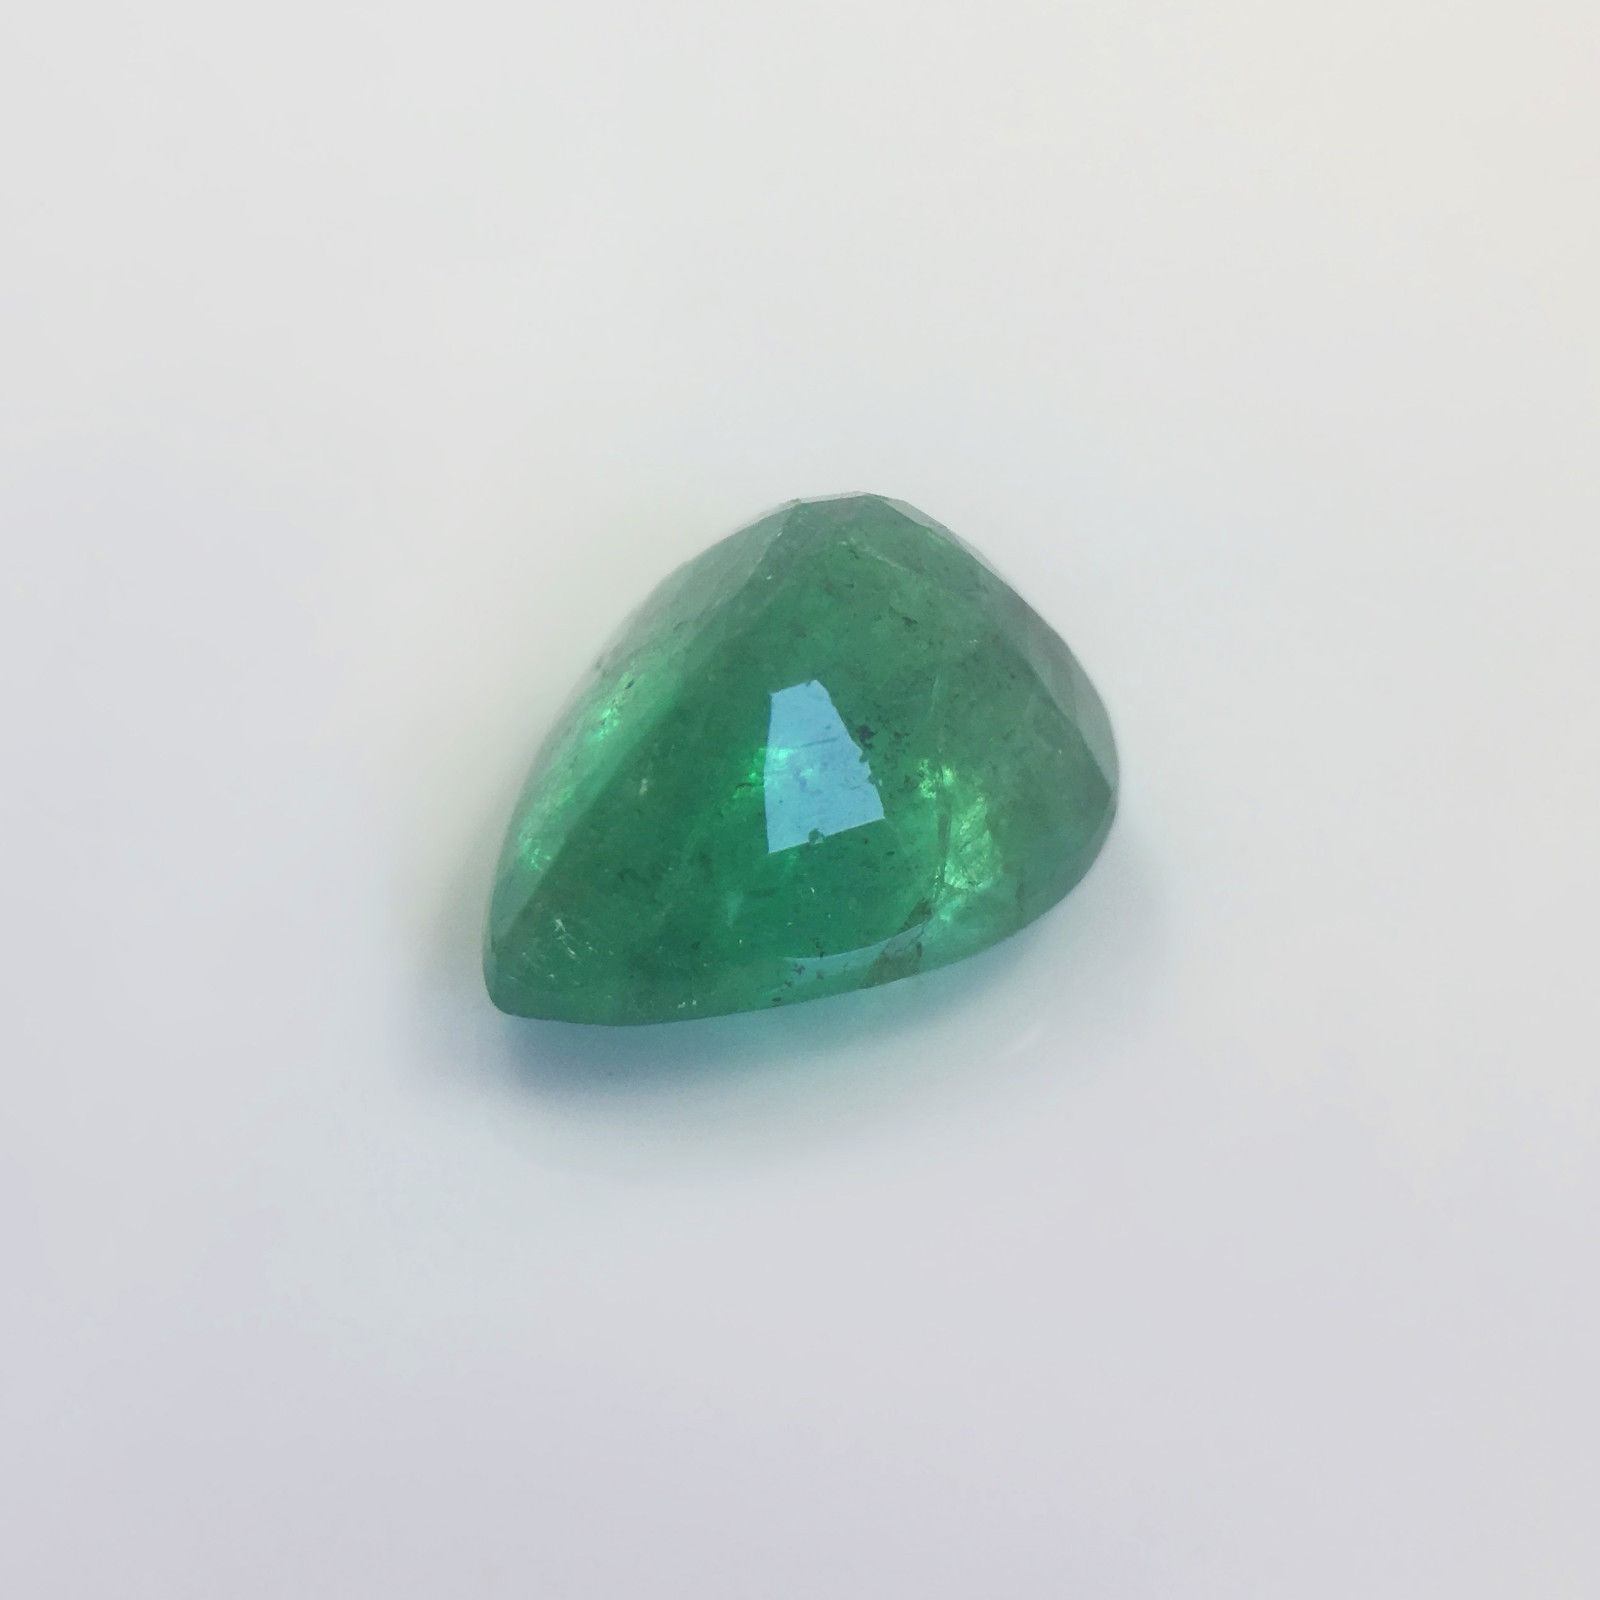 the view emerald gemstones in of treated colourful valuable polished case gems heat elevated world most